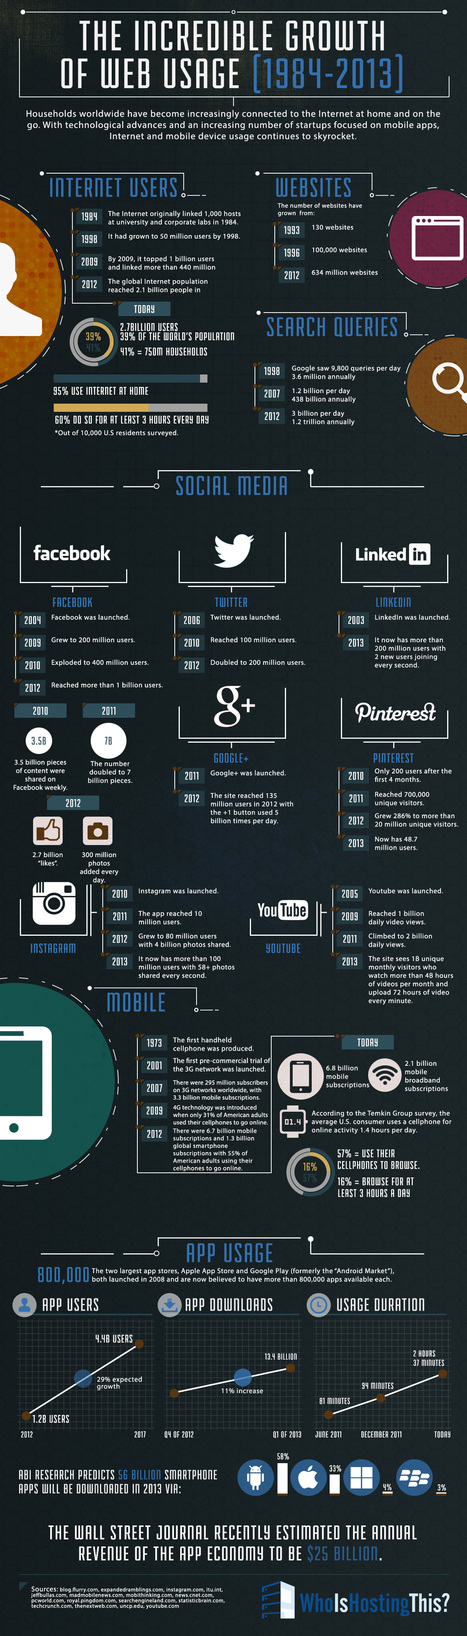 Infographic: The Incredible Growth of Web Usage [1984-2013] | Digital, Social Media and Internet Marketing | Scoop.it